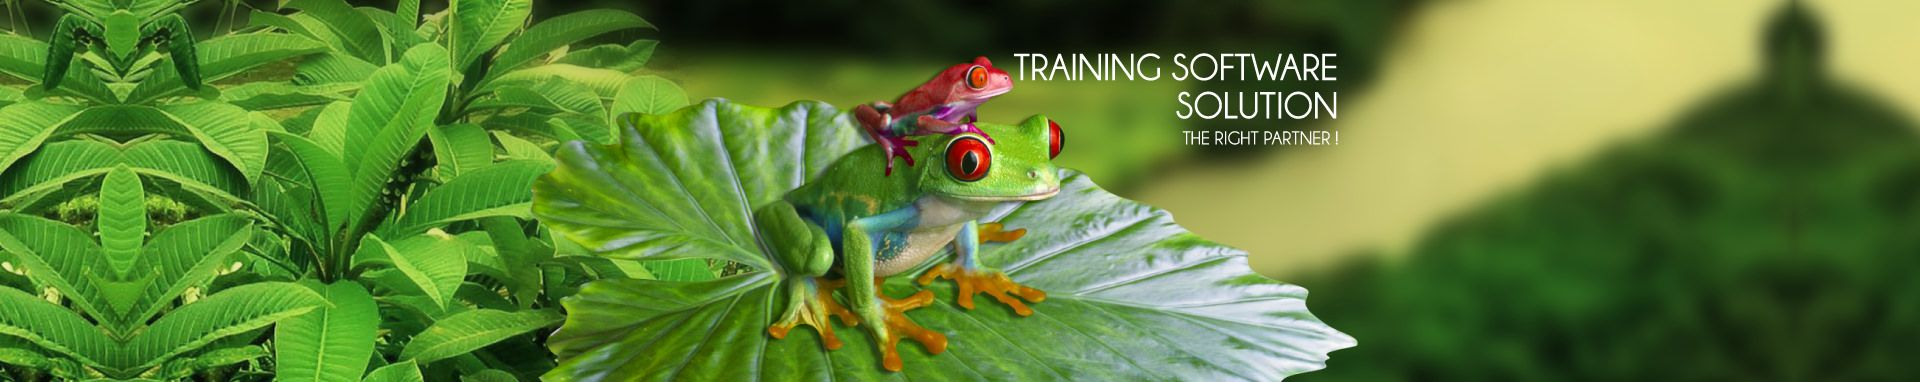 Training management software : the right partner !